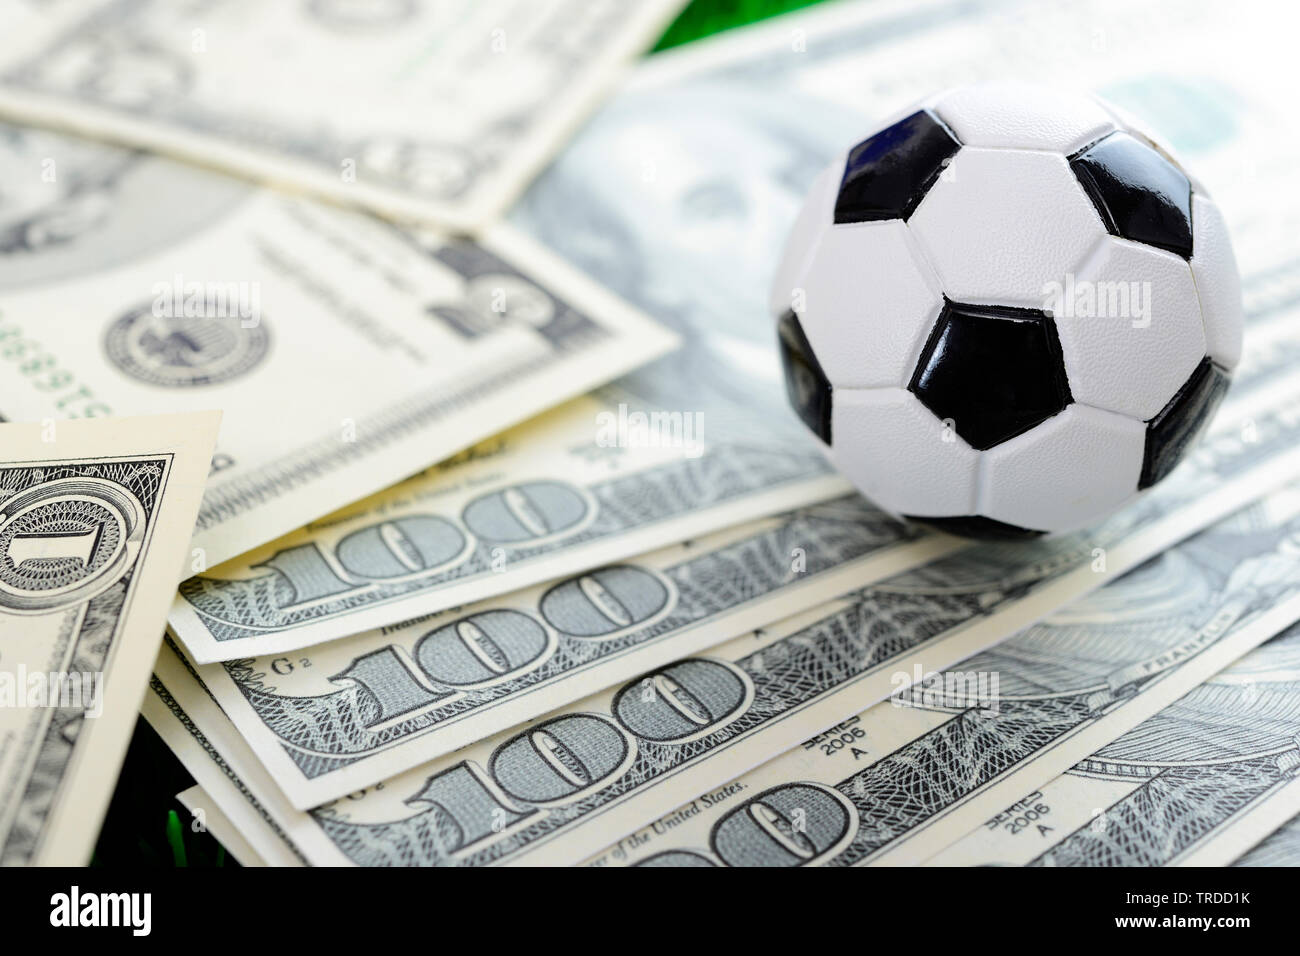 football and dollar bills, FIFA scandal - Stock Image